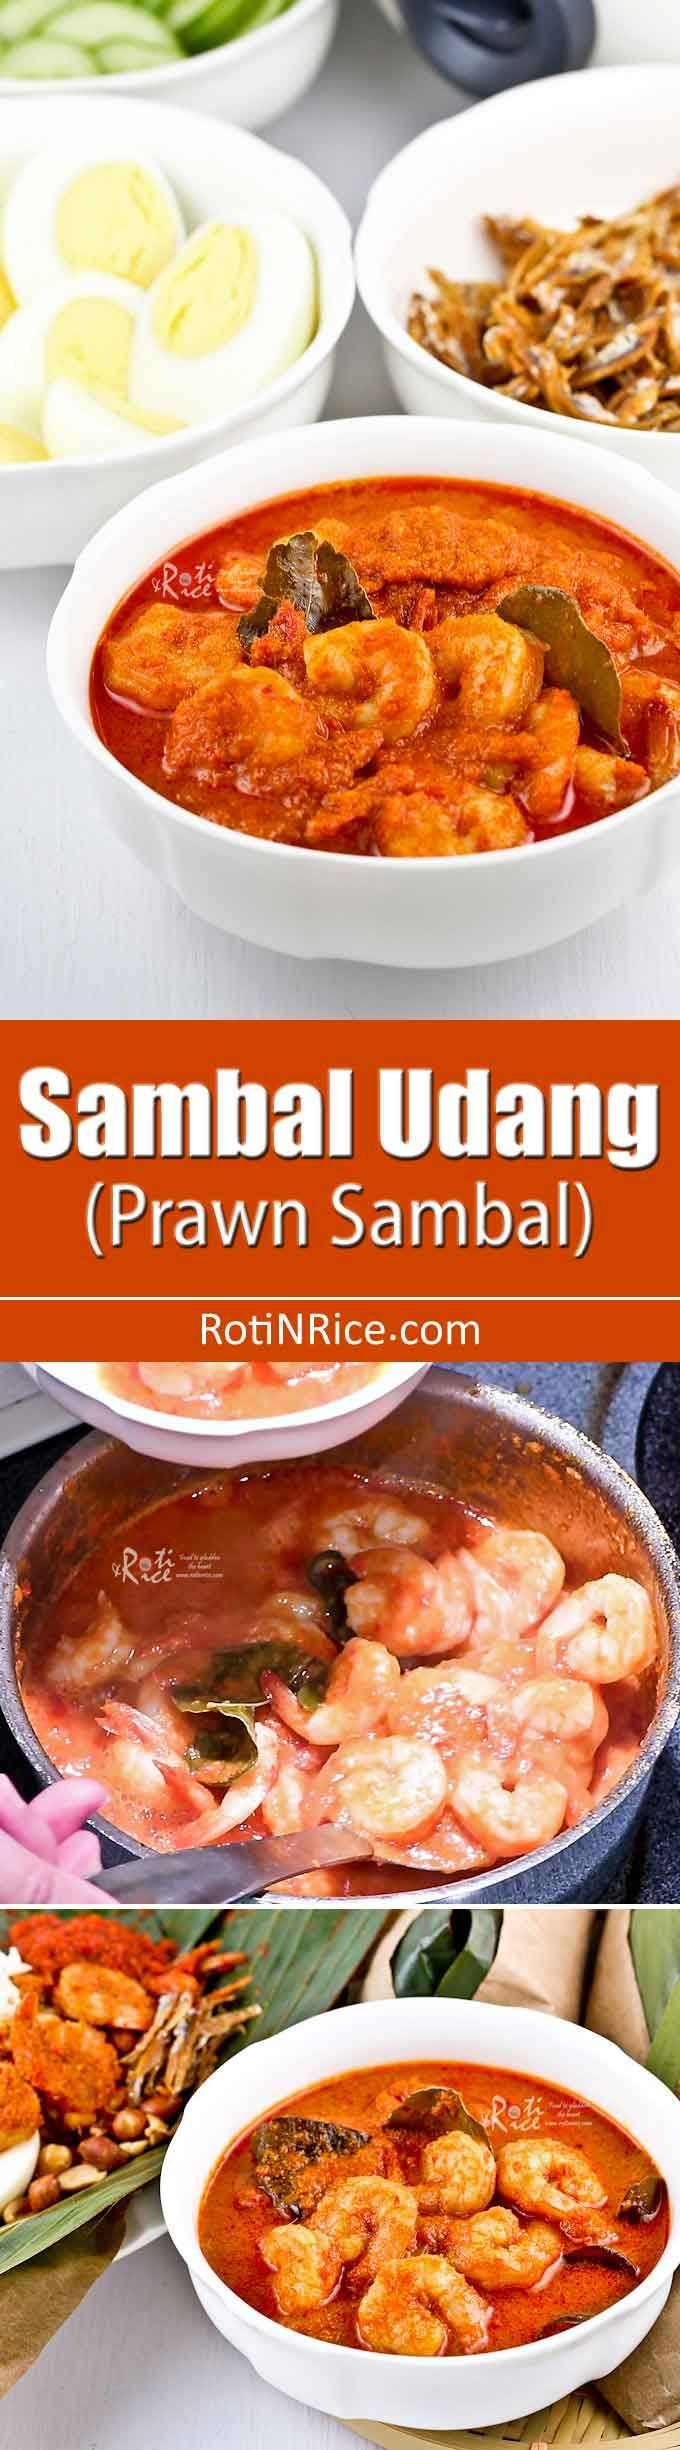 Sambal Udang (Prawn Sambal) is a fiery and piquant side dish often served as an accompaniment to perk up any rice meal. A must-try for the spicy food fan. | MalaysianChineseKitchen.com